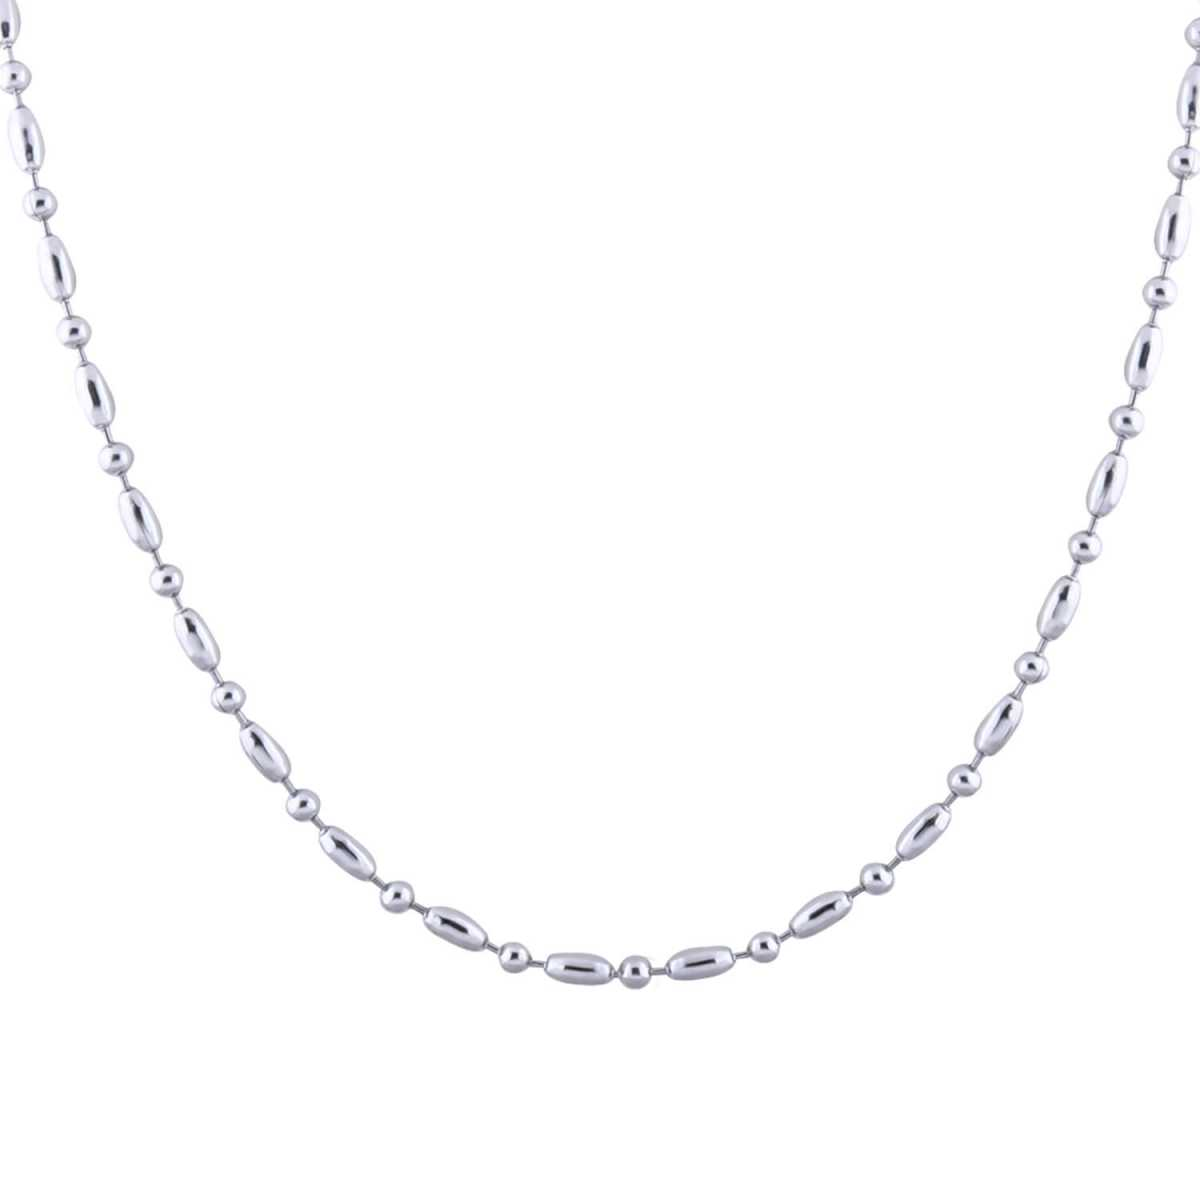 Silverplated Stylist chain for Men and women Jewellery